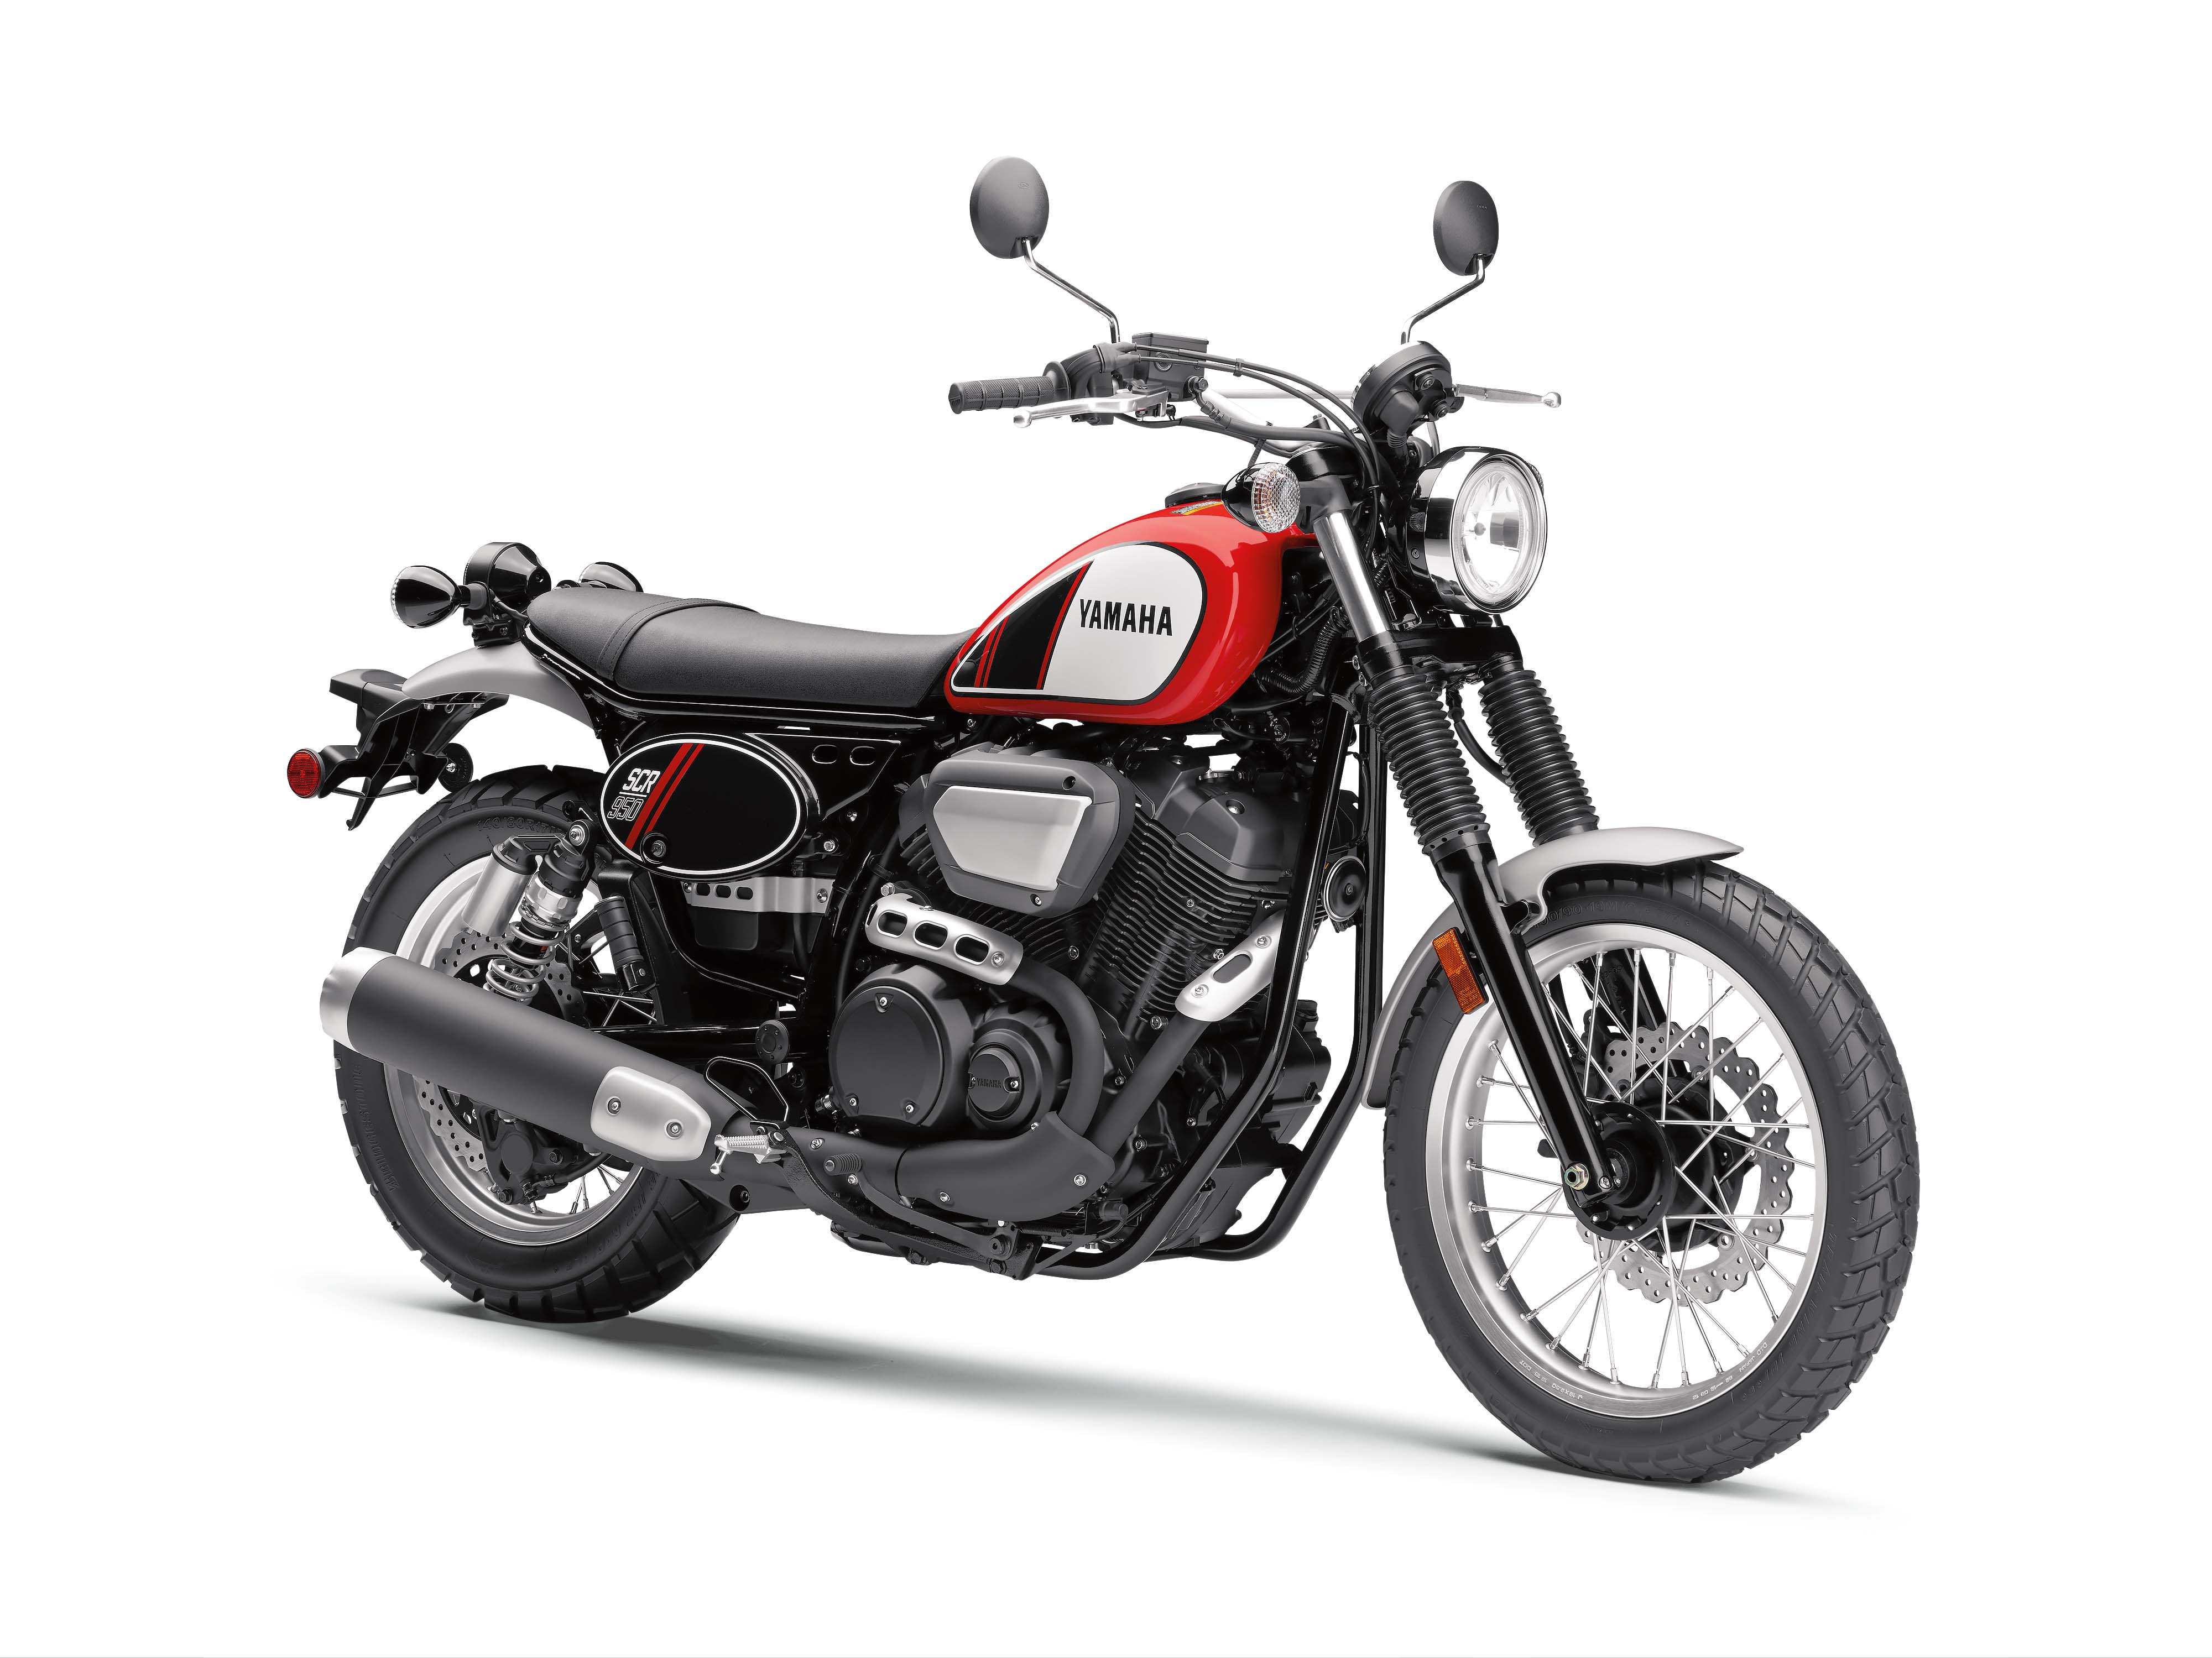 fuel injected engine with 2017 Yamaha Scr950 Scrambler on Chevrolet Corvette C3 further Yamaha Plans New 125cc Scooter For India 008128 as well 2014 Kubota Grand L6060 Cab Review 1629 furthermore 2007 Yamaha Xt660x Motorcycle Accident as well Seafire.